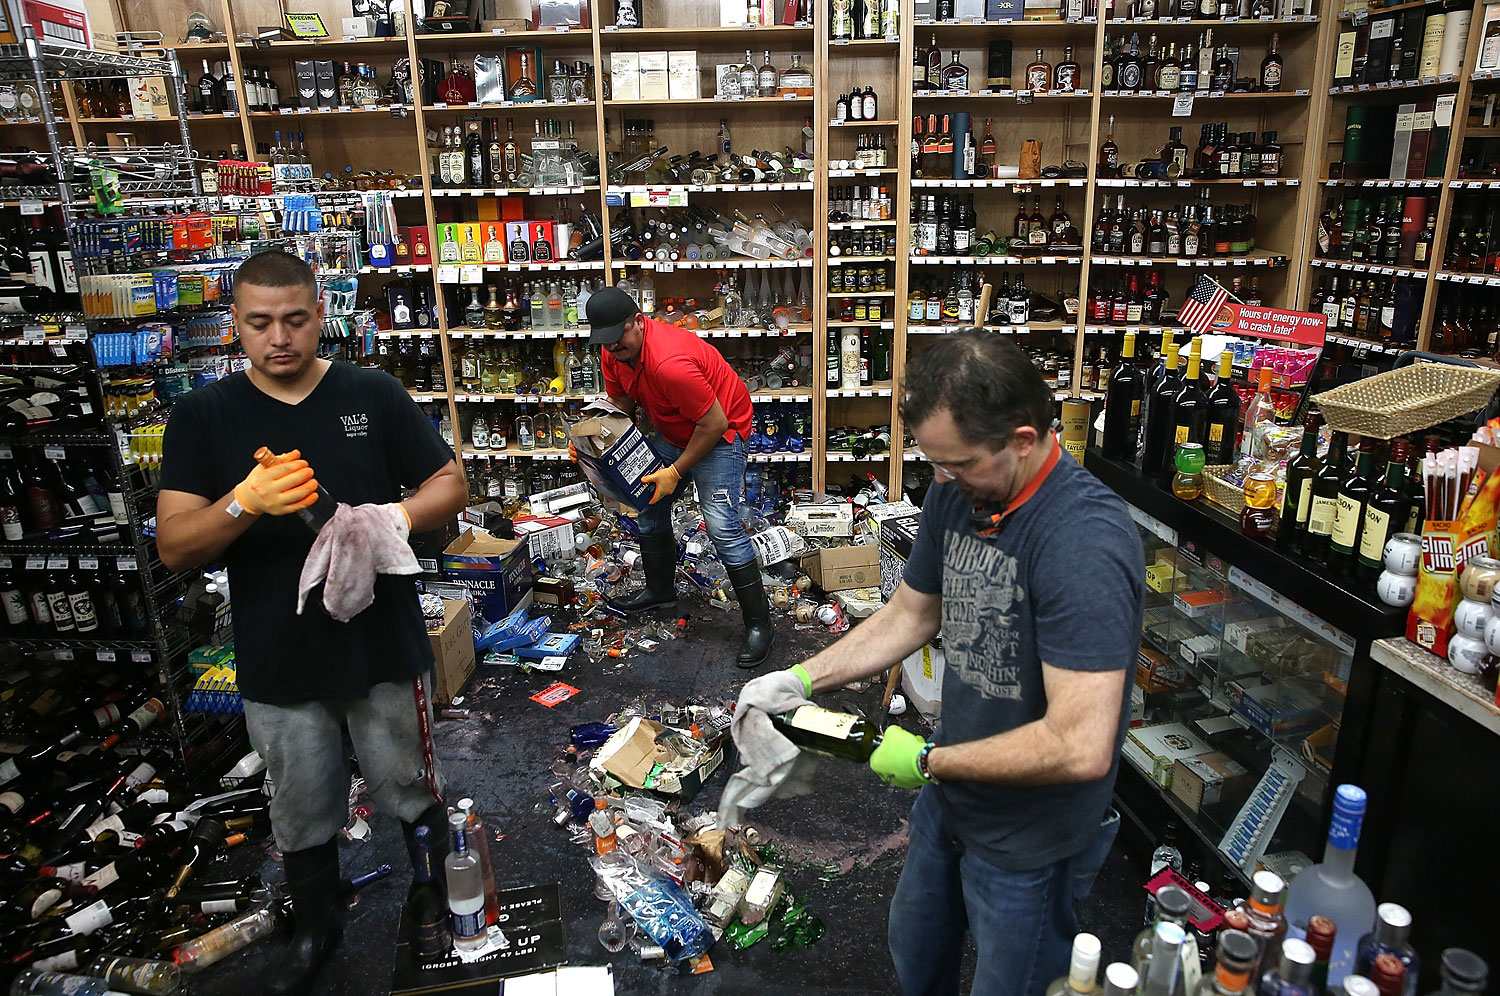 Workers clean up piles of bottles that were thrown from the shelves at Van's Liquors in Napa, Calif.